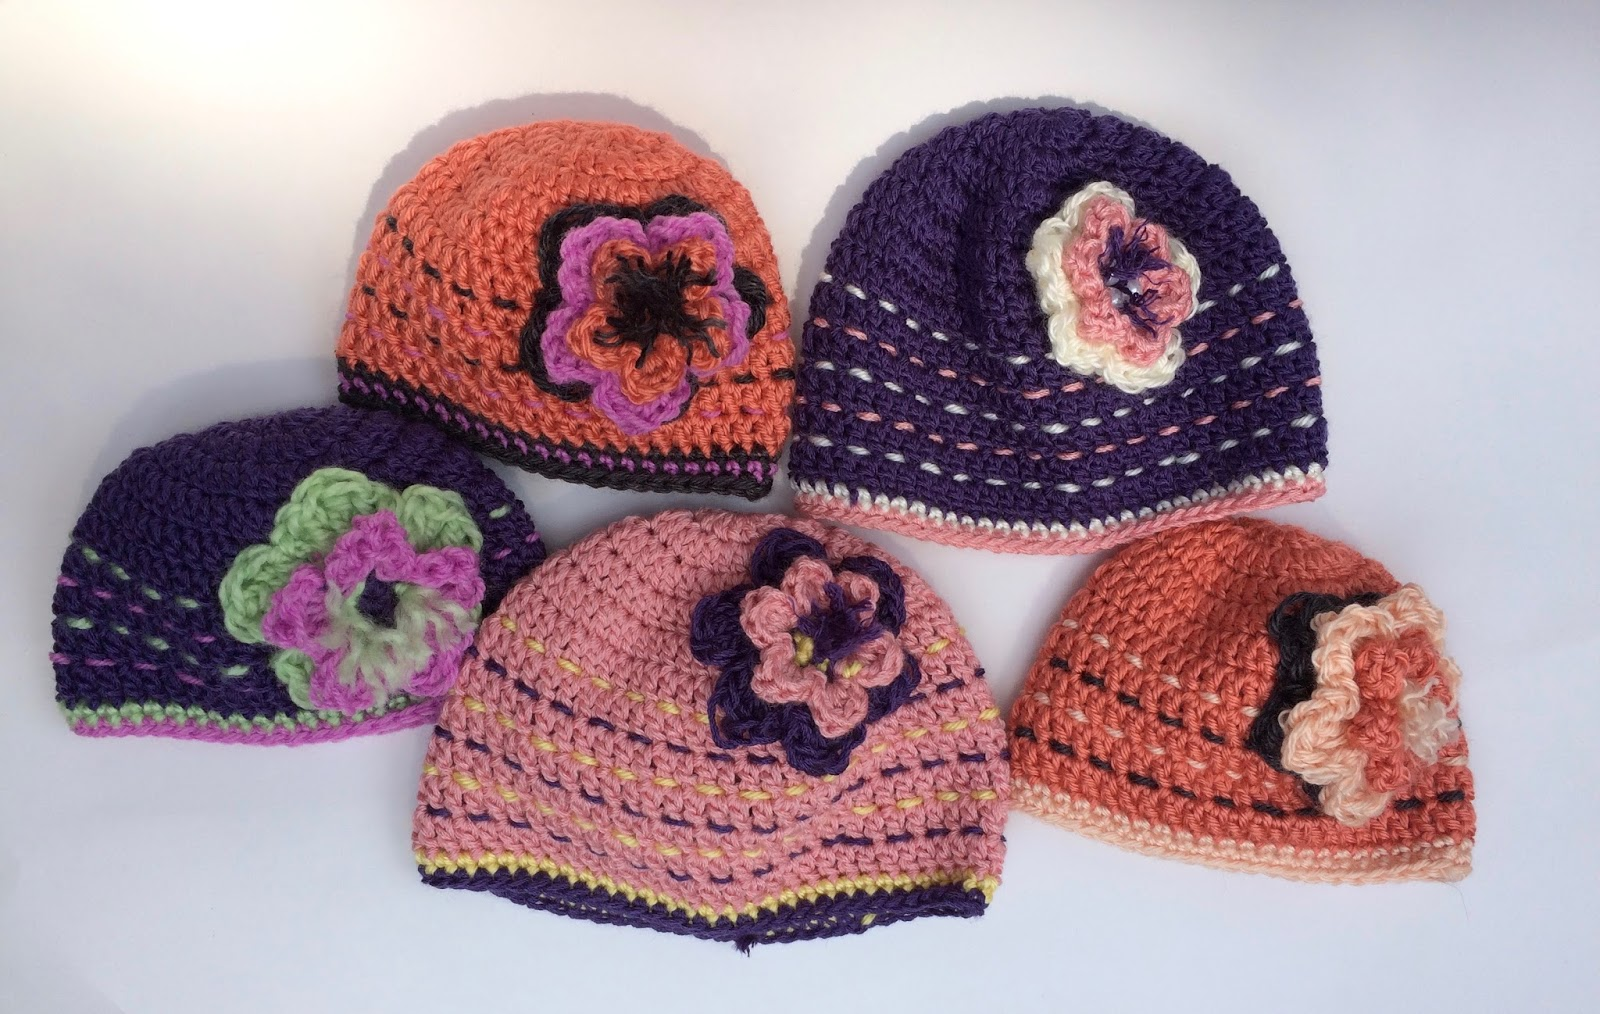 Crochet Pattern Testers : Olenas Crafts: Pattern Testers Wanted - New Crochet Hat ...